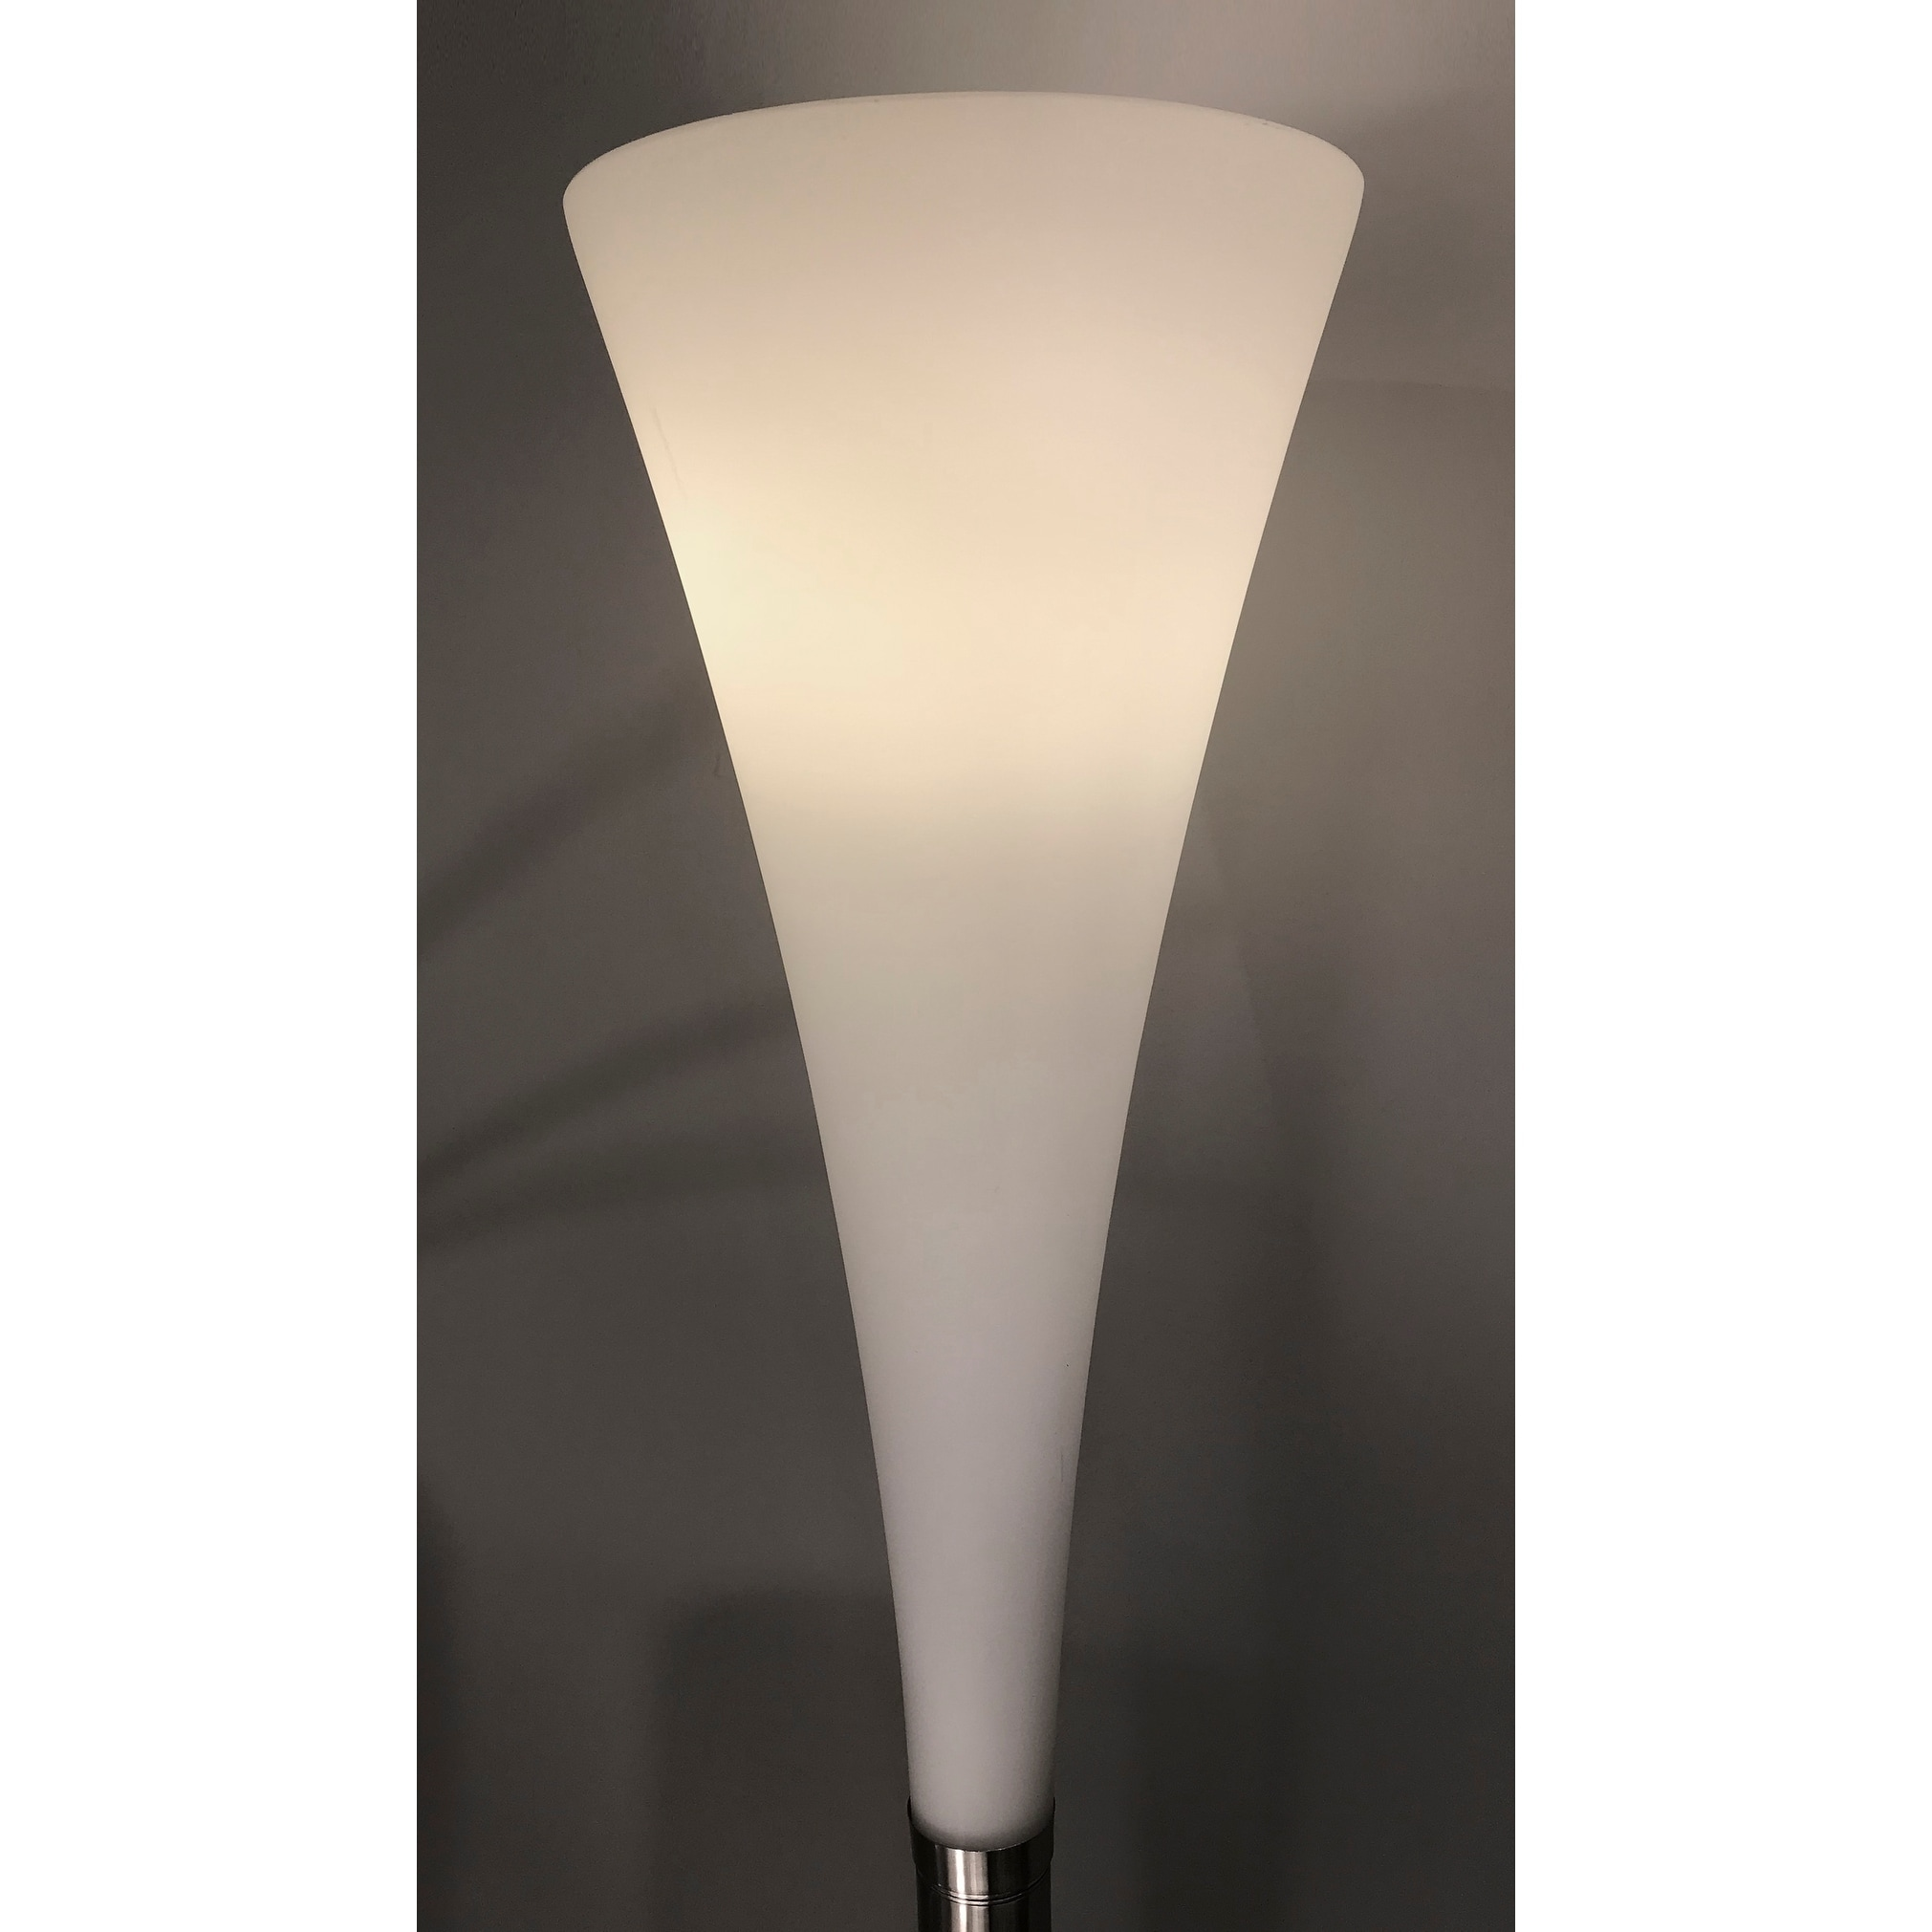 Image of: Shop Black Friday Deals On Adesso Mimosa Satin Steel Torchiere Floor Lamp Overstock 26456278